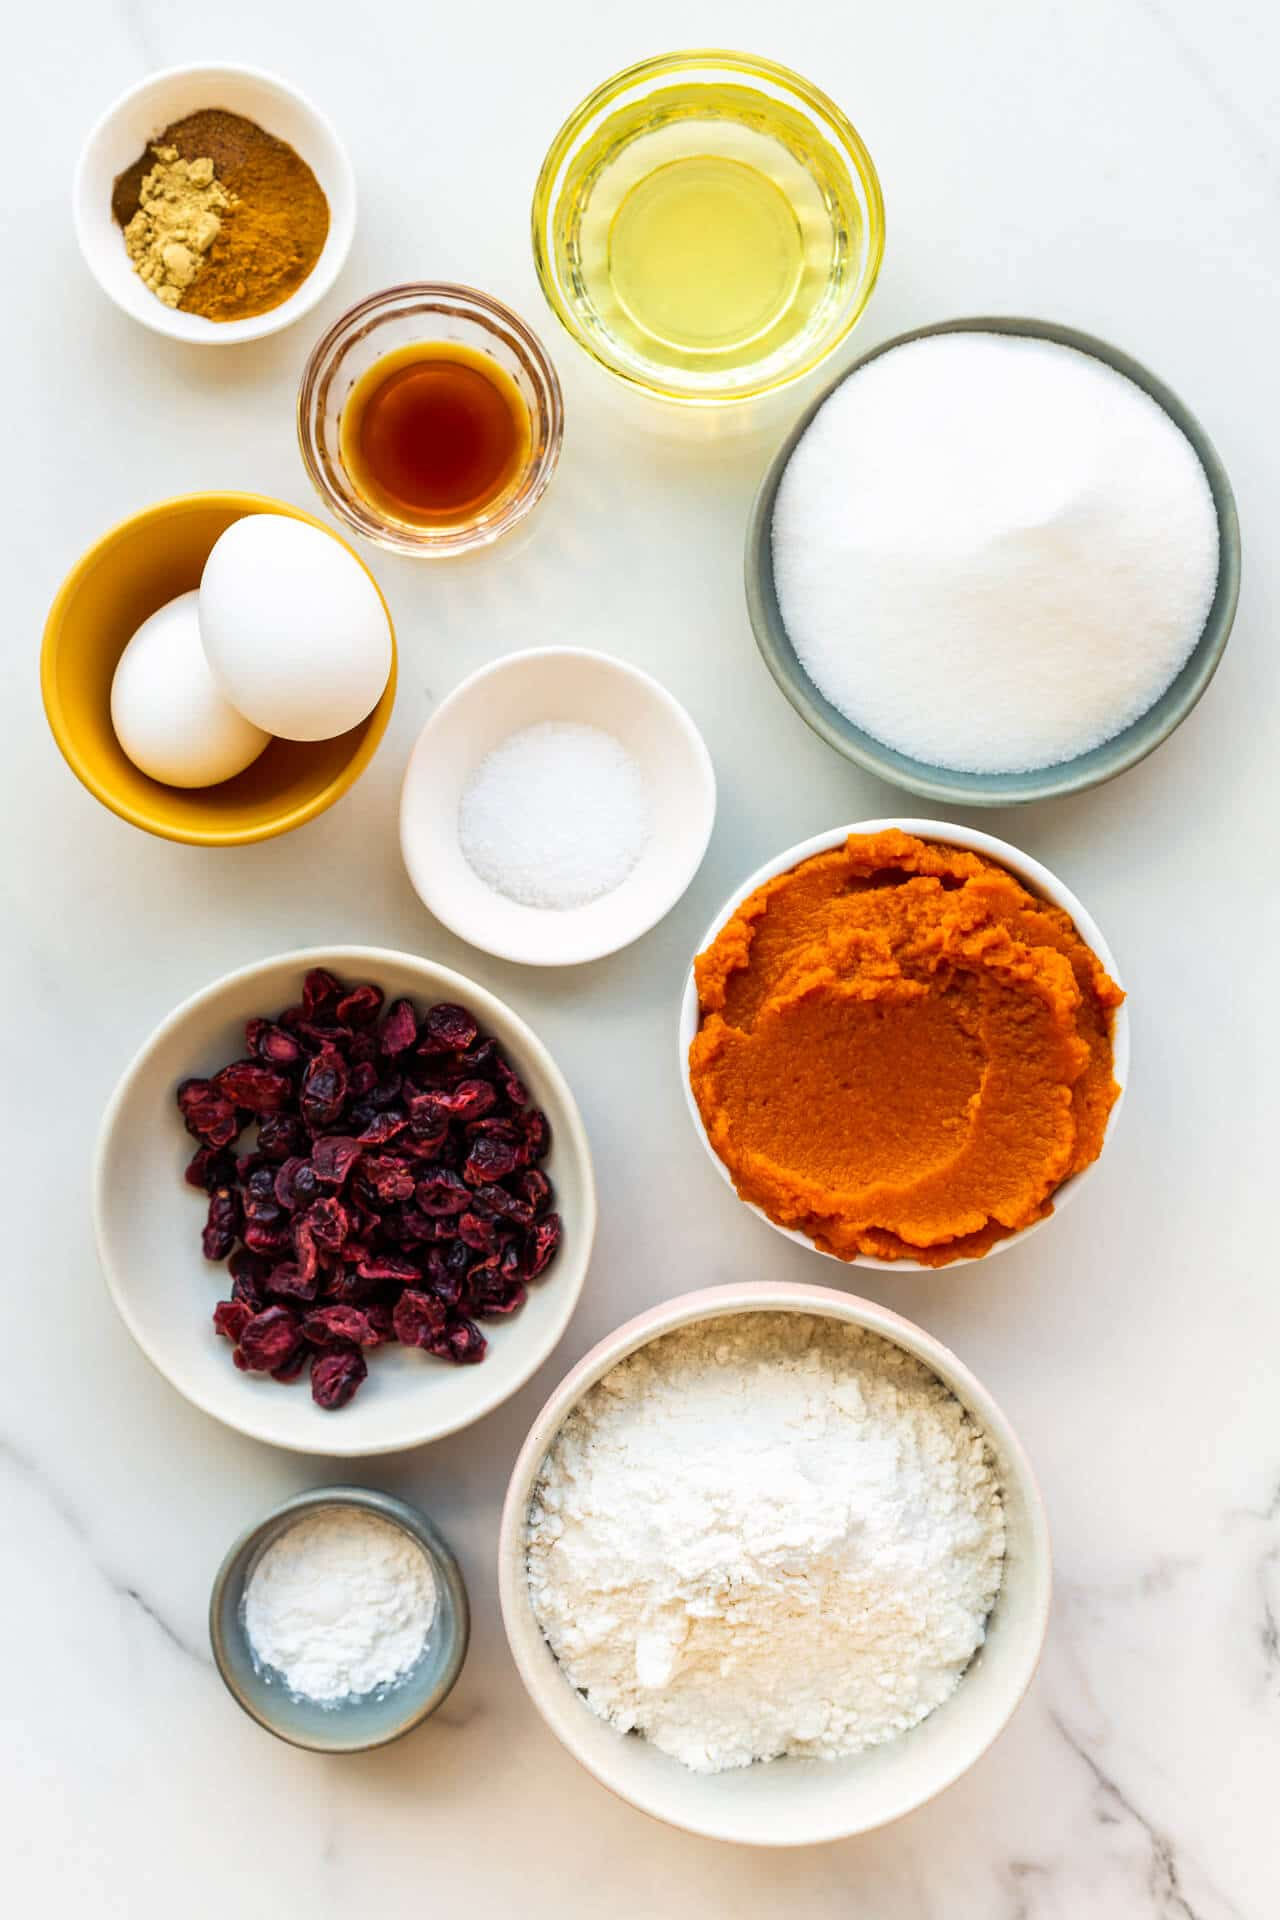 Ingredients to make pumpkin bread with dried cranberries measured out into little bowls